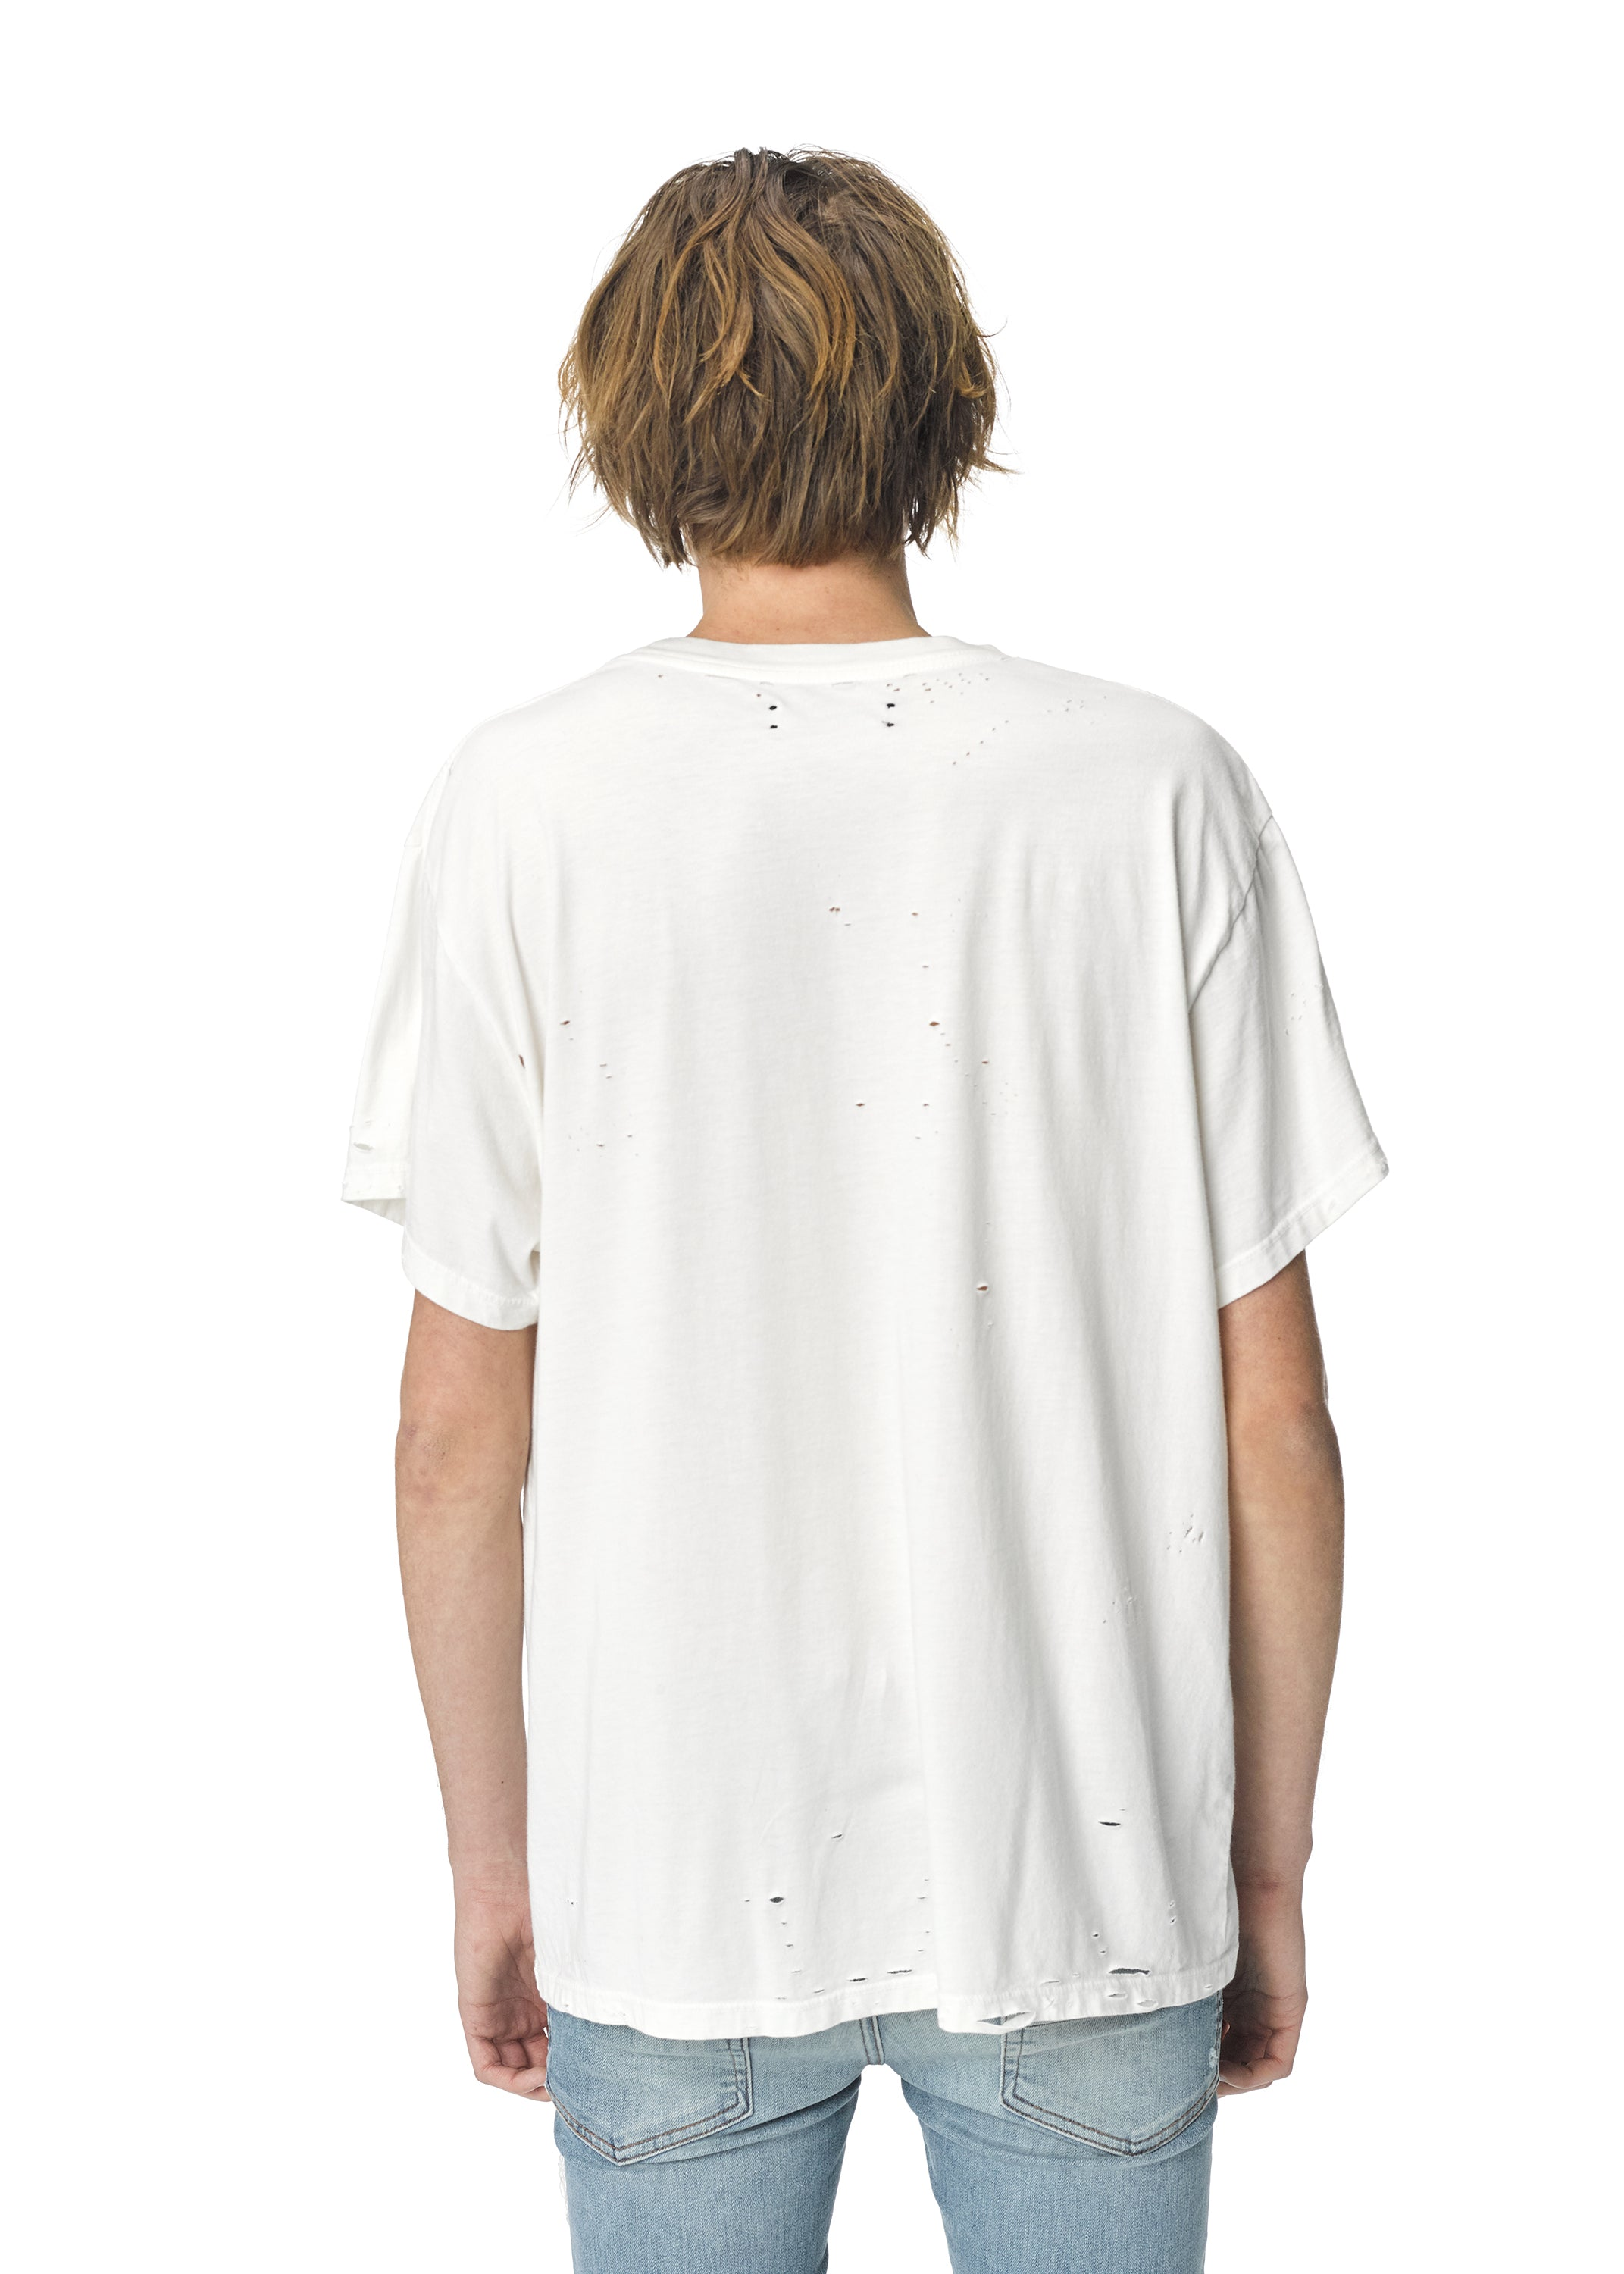 city-dragon-tee-marshmallow-image-4